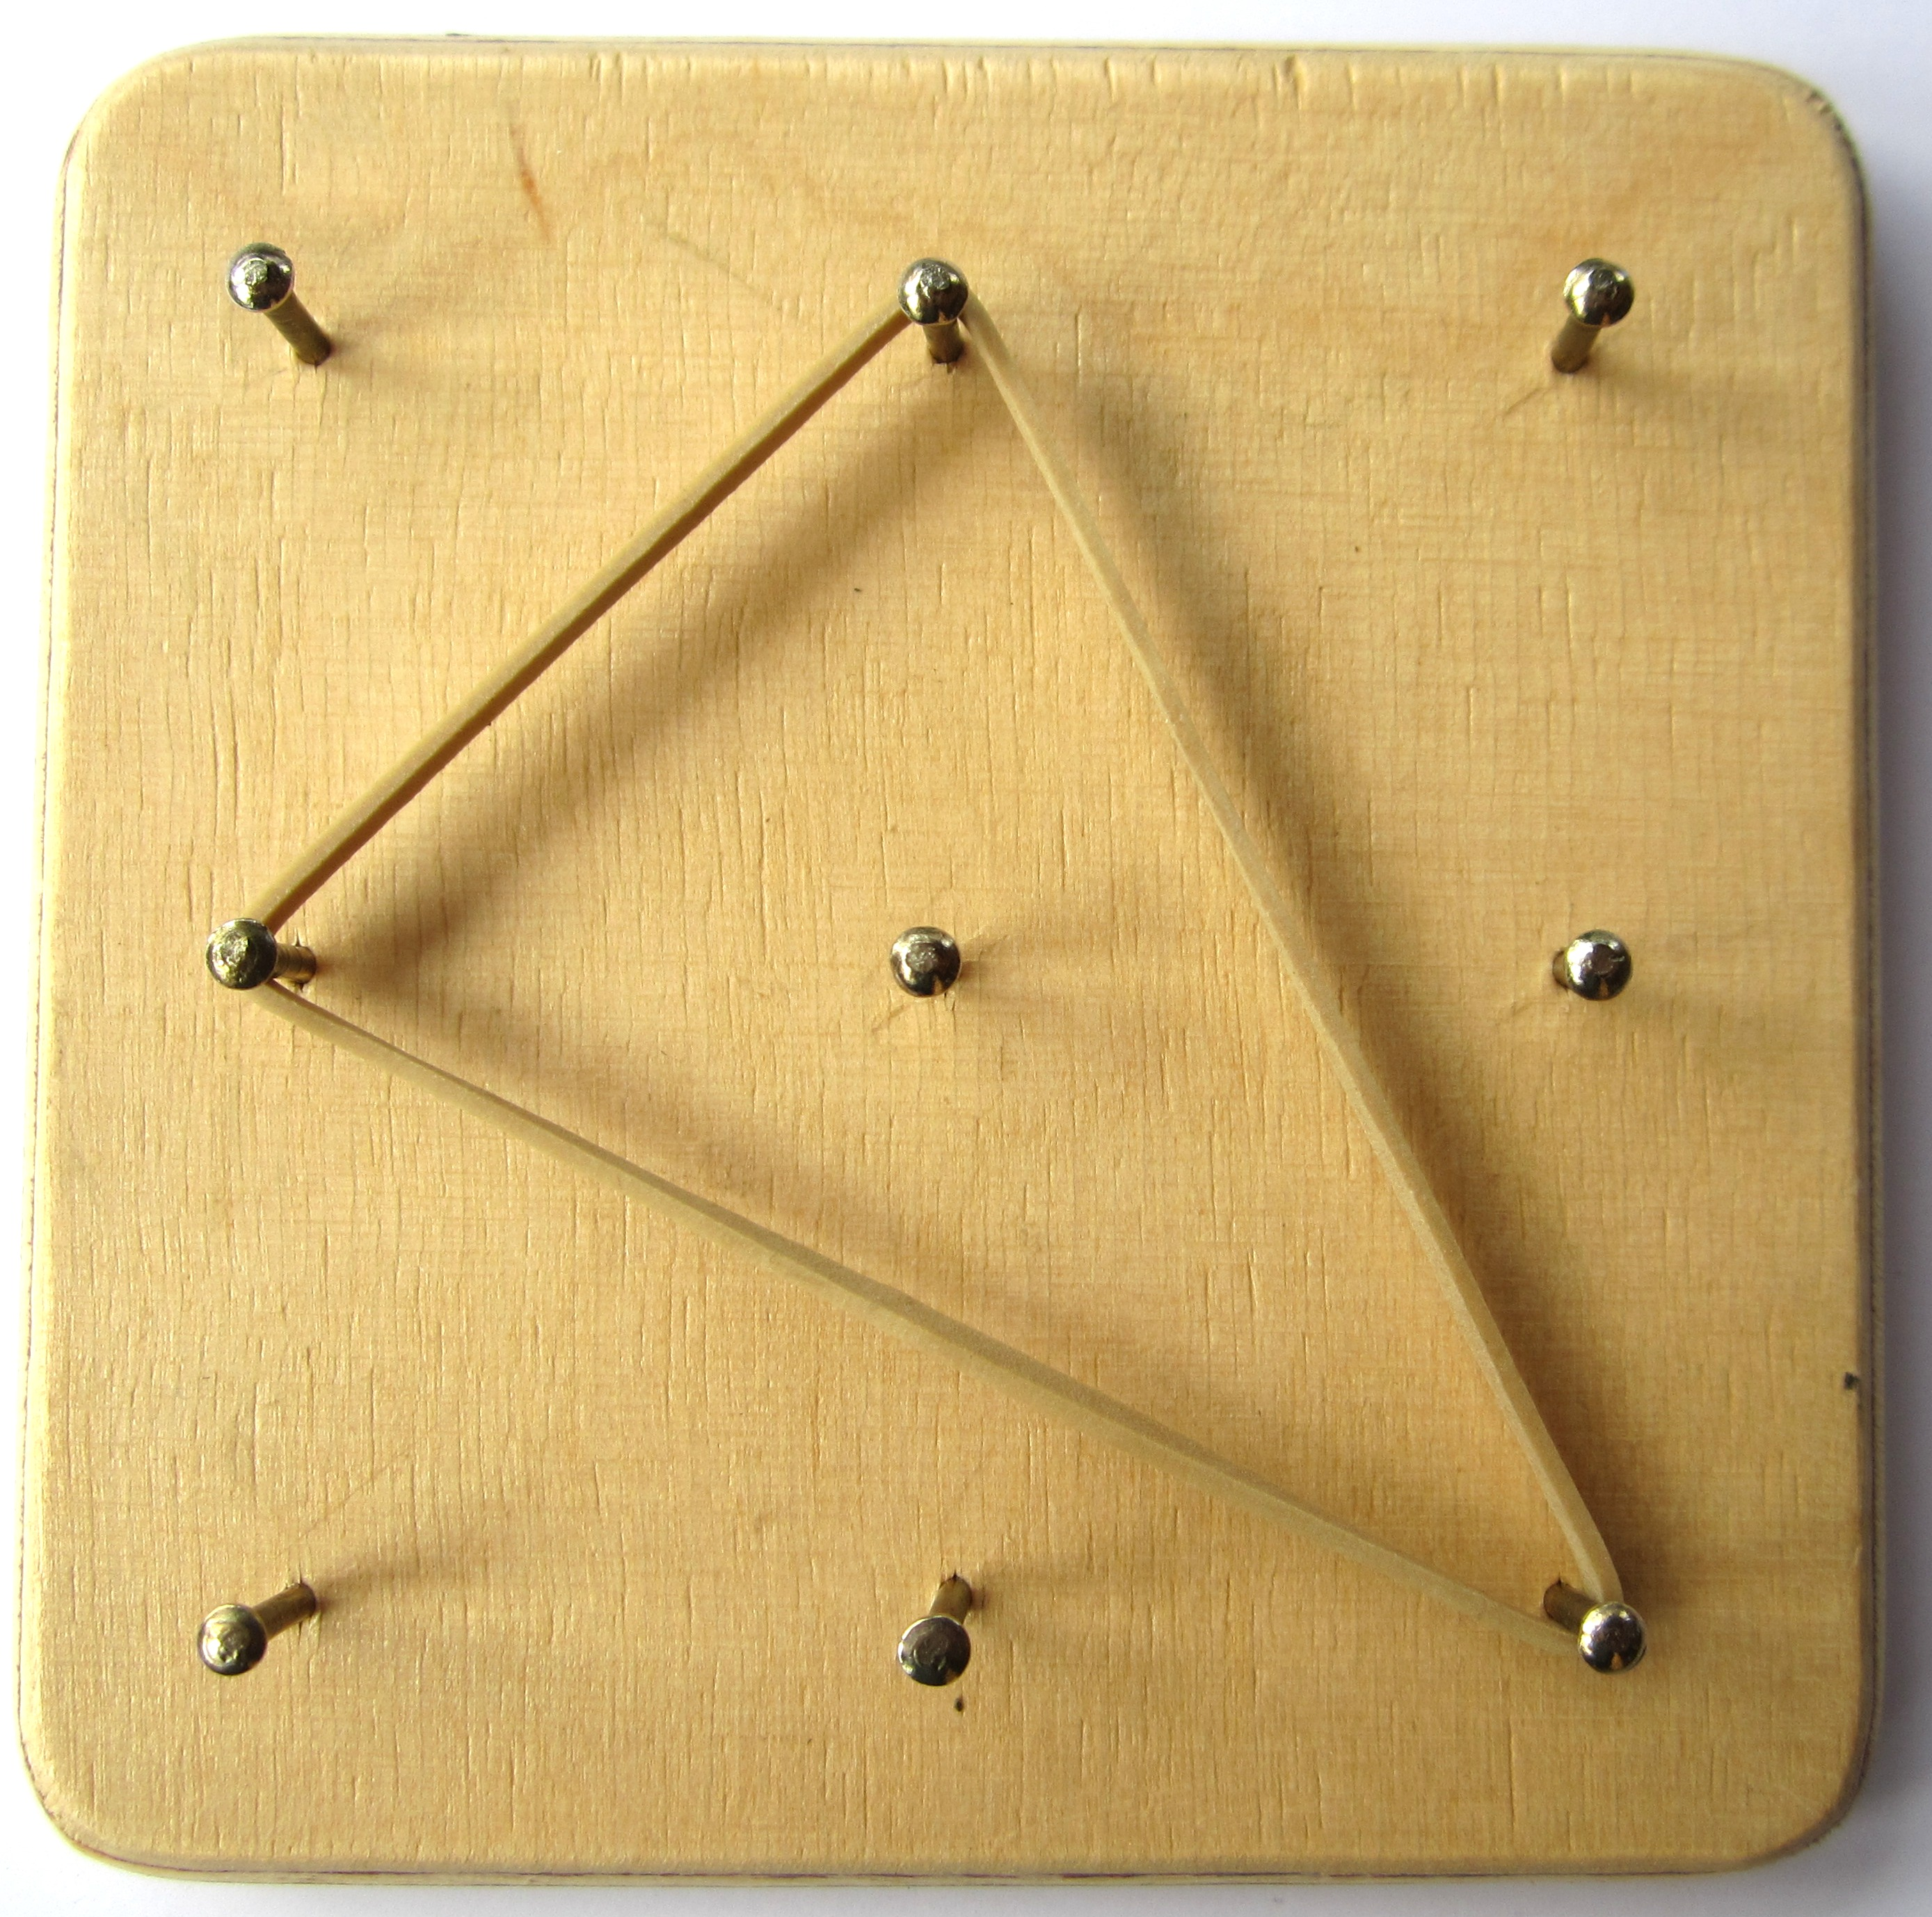 Geoboard made of Wood and Nails